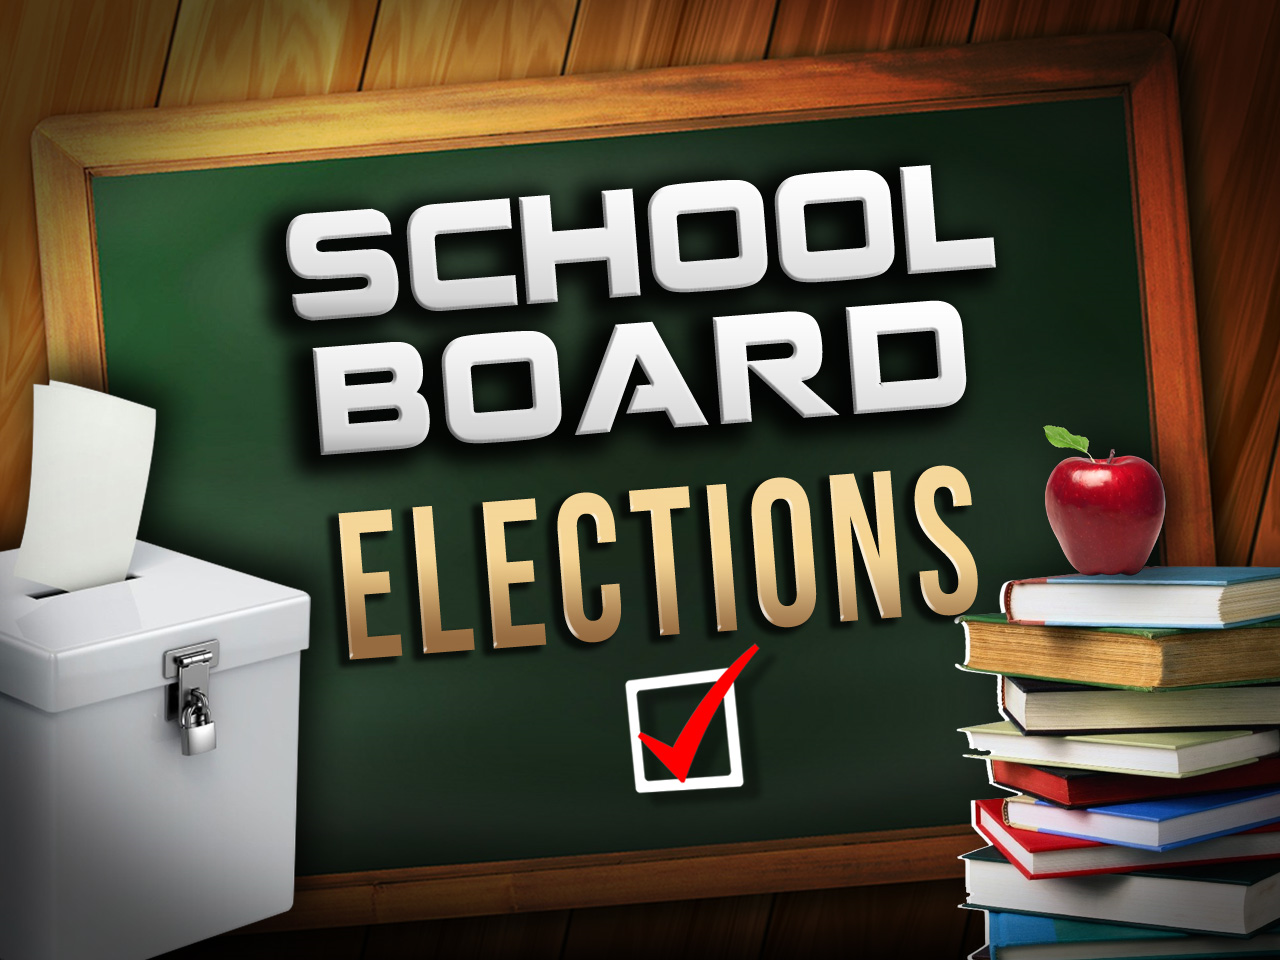 Sioux City School Board Elections coming up tomorrow